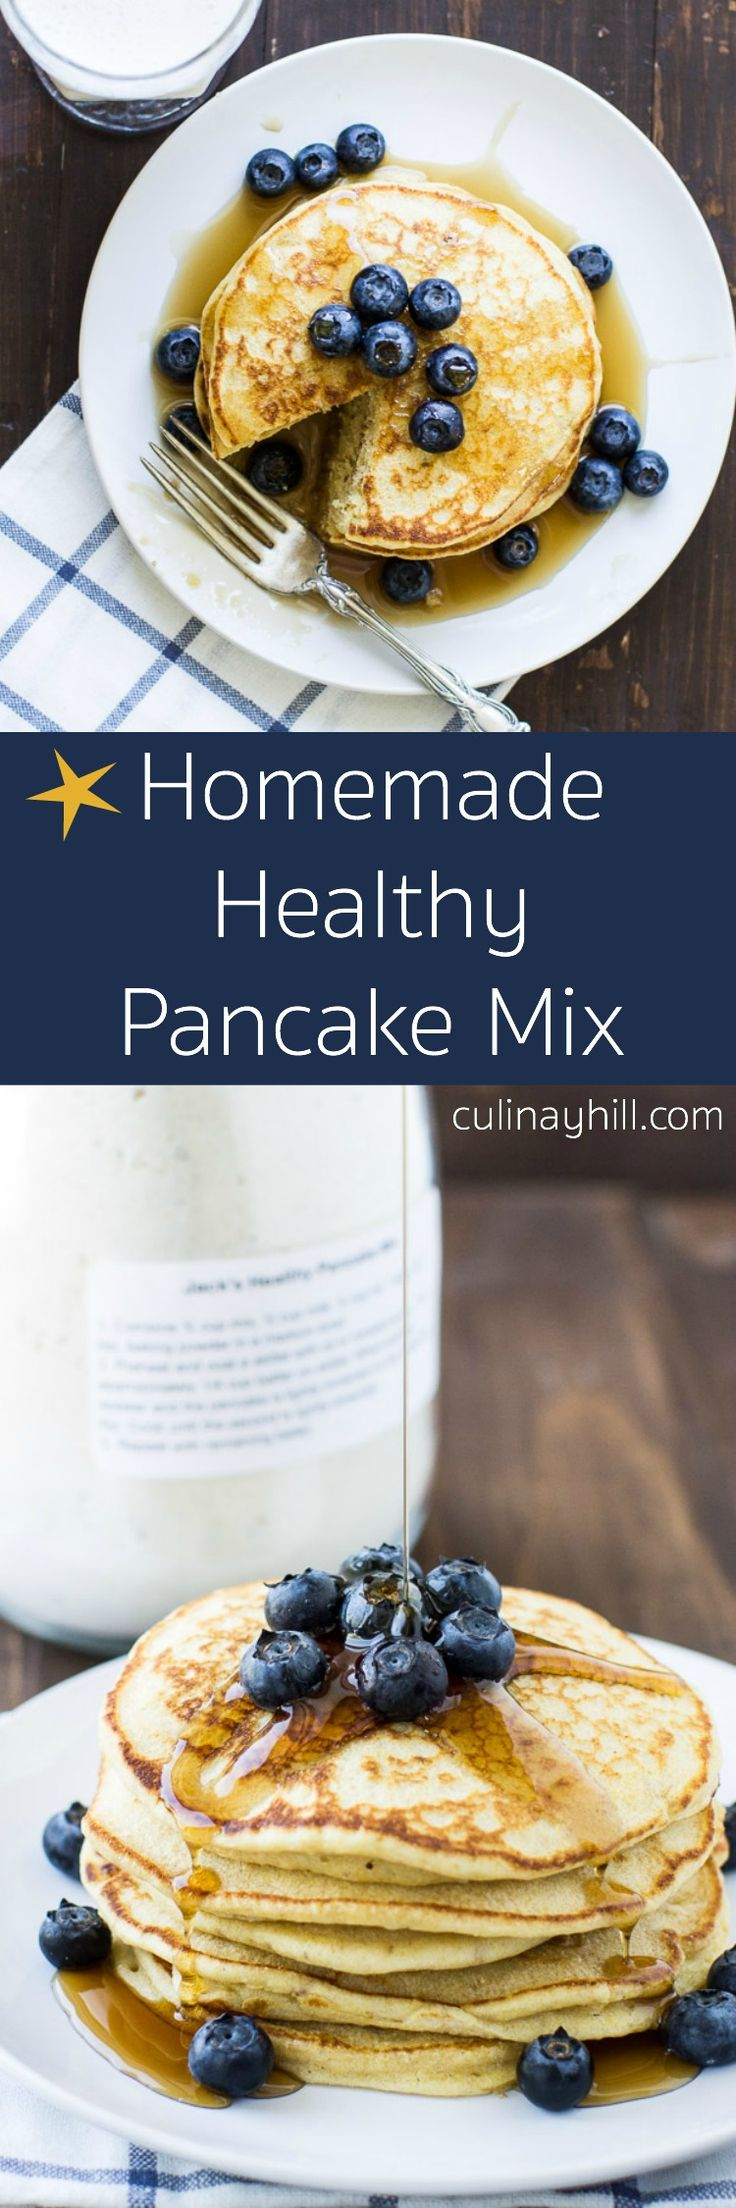 Customize your own blend of homemade Healthy Pancake Mix with this tried-and-true recipe. So quick and easy, you'll never go back to store-bought again! No sugar added.